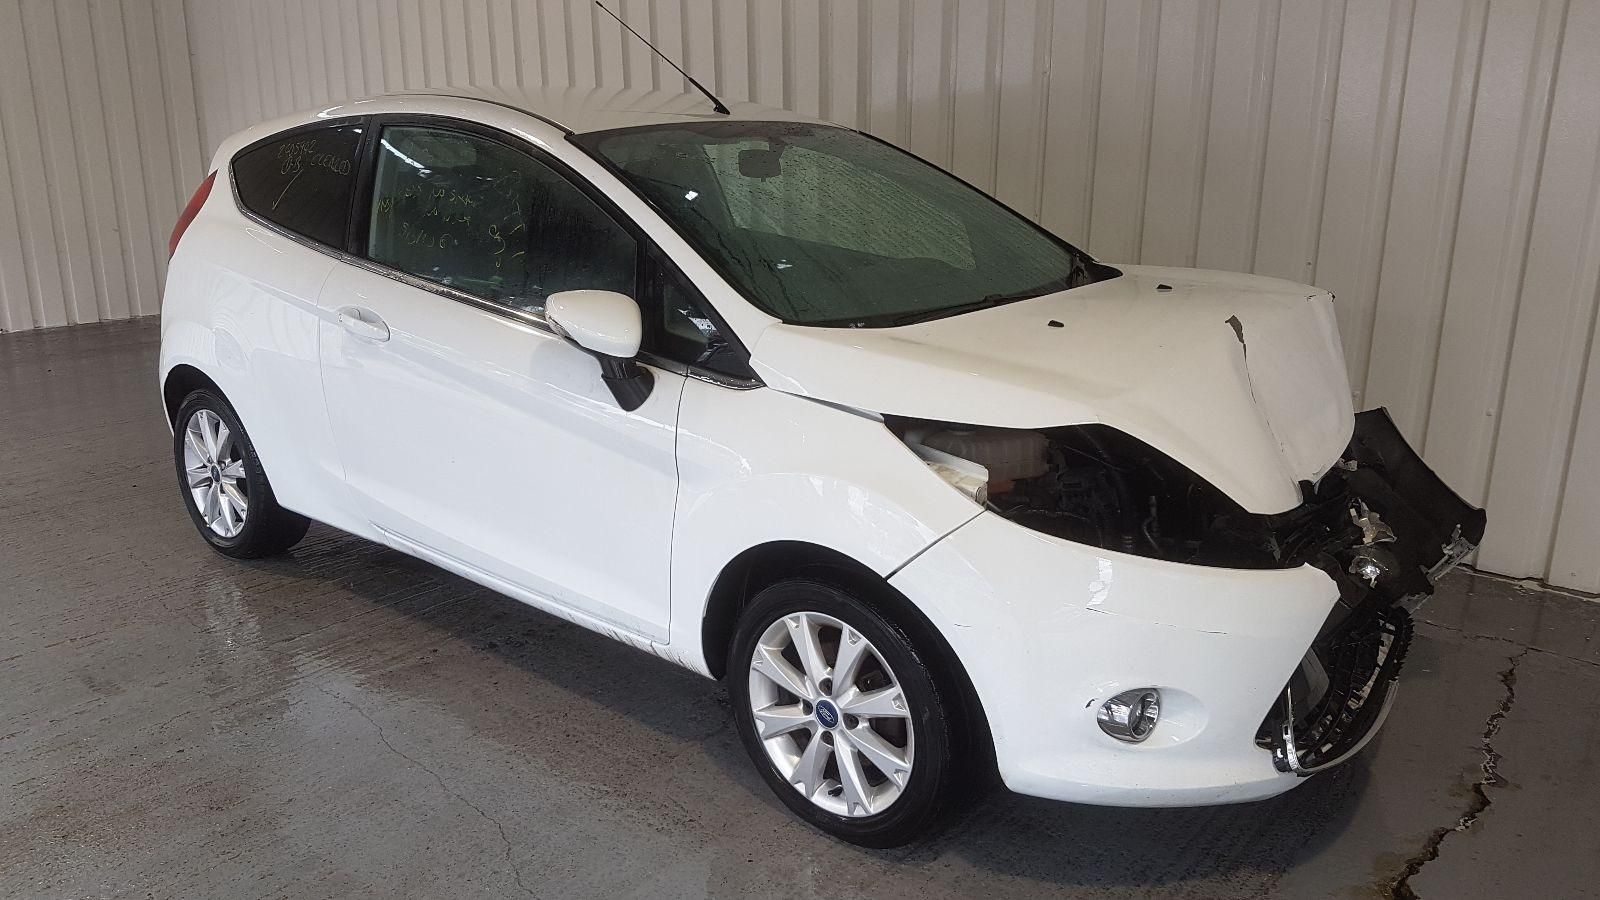 Image for a Ford Fiesta 2011 3 Door Unknown